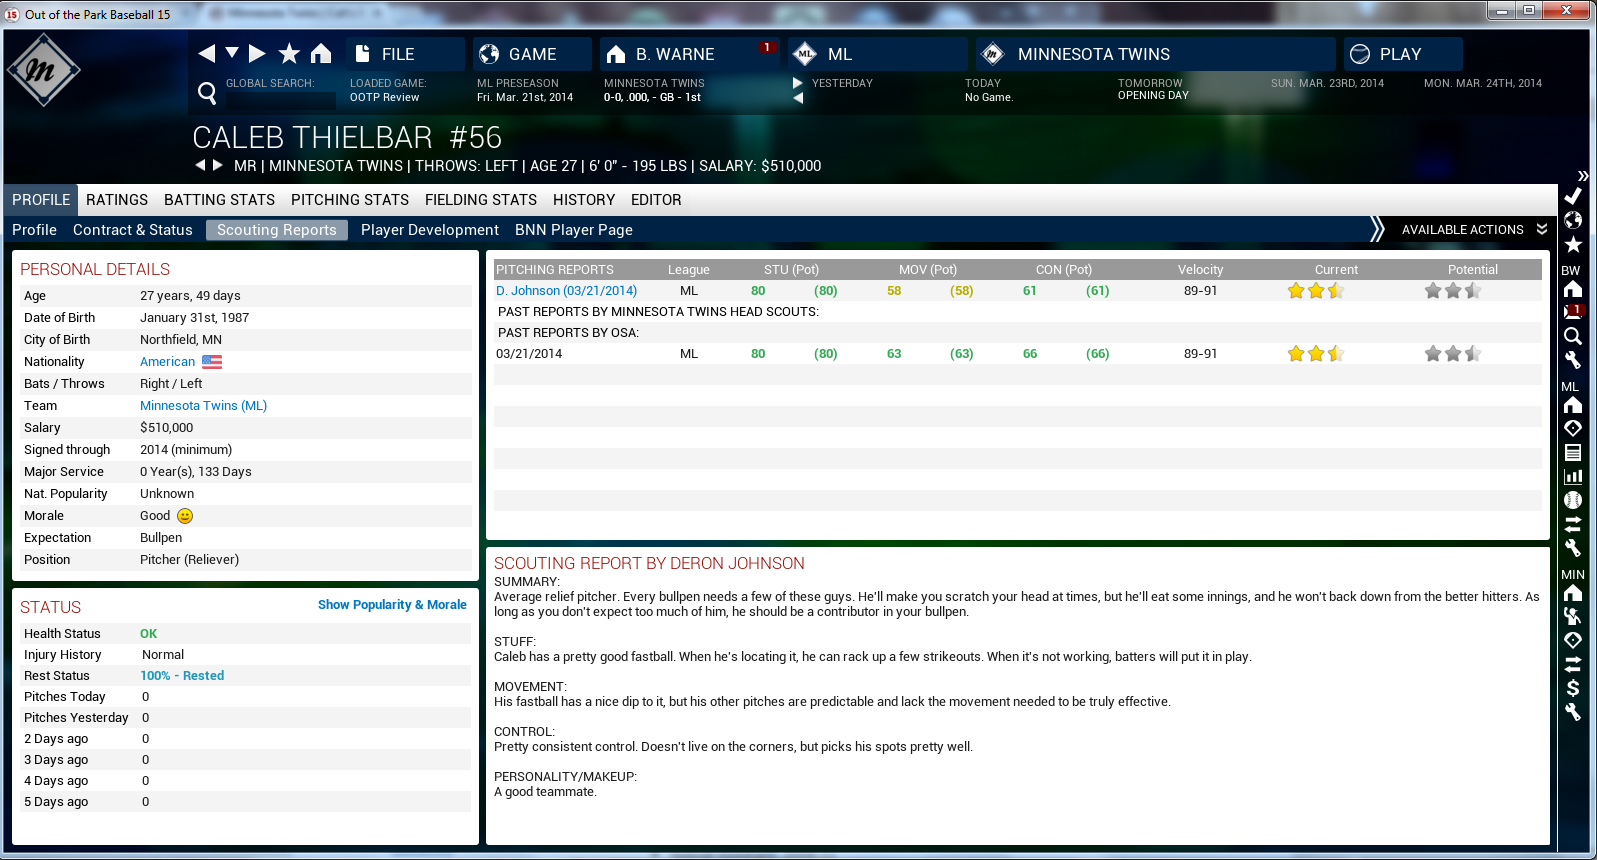 OOTP15 Player Details